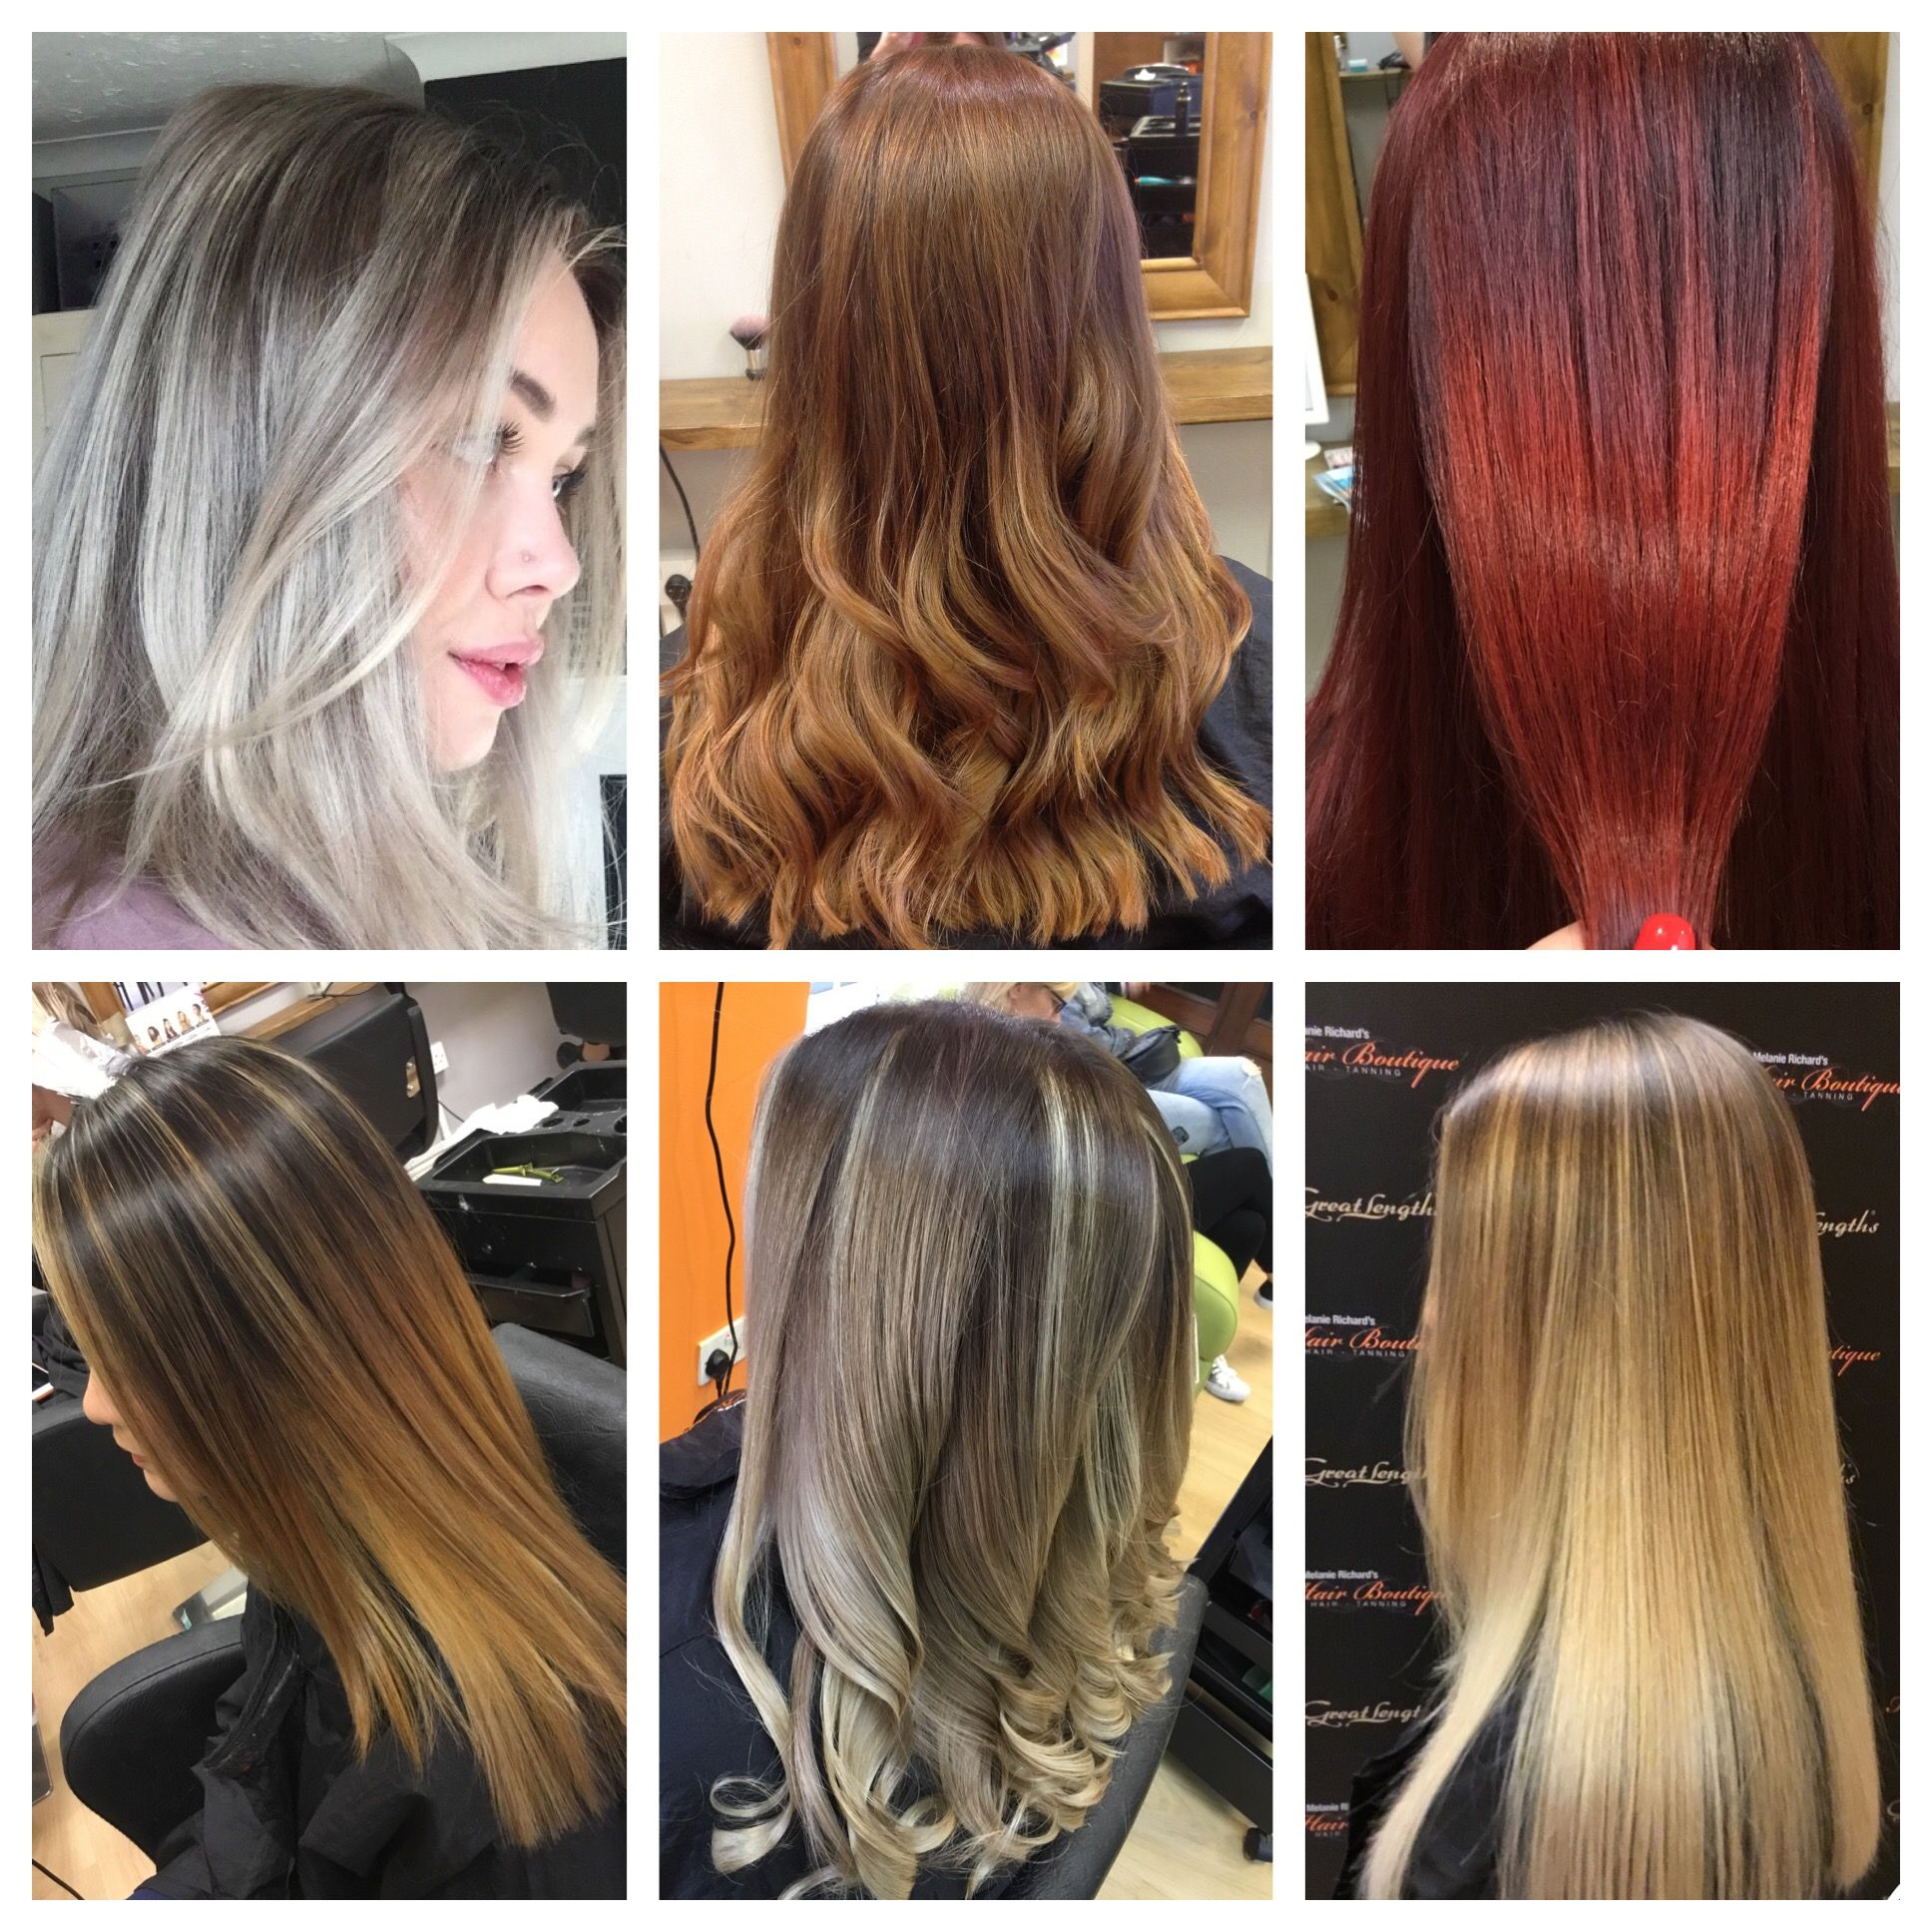 A range of Balayages and freelights by some of our Stylists 😍👌🏻❤️ #wellacolour #freehand #freelights #personalised #colour #balayage #tones #longhair #blend #fashion #melanierichardshairboutique #peterborough